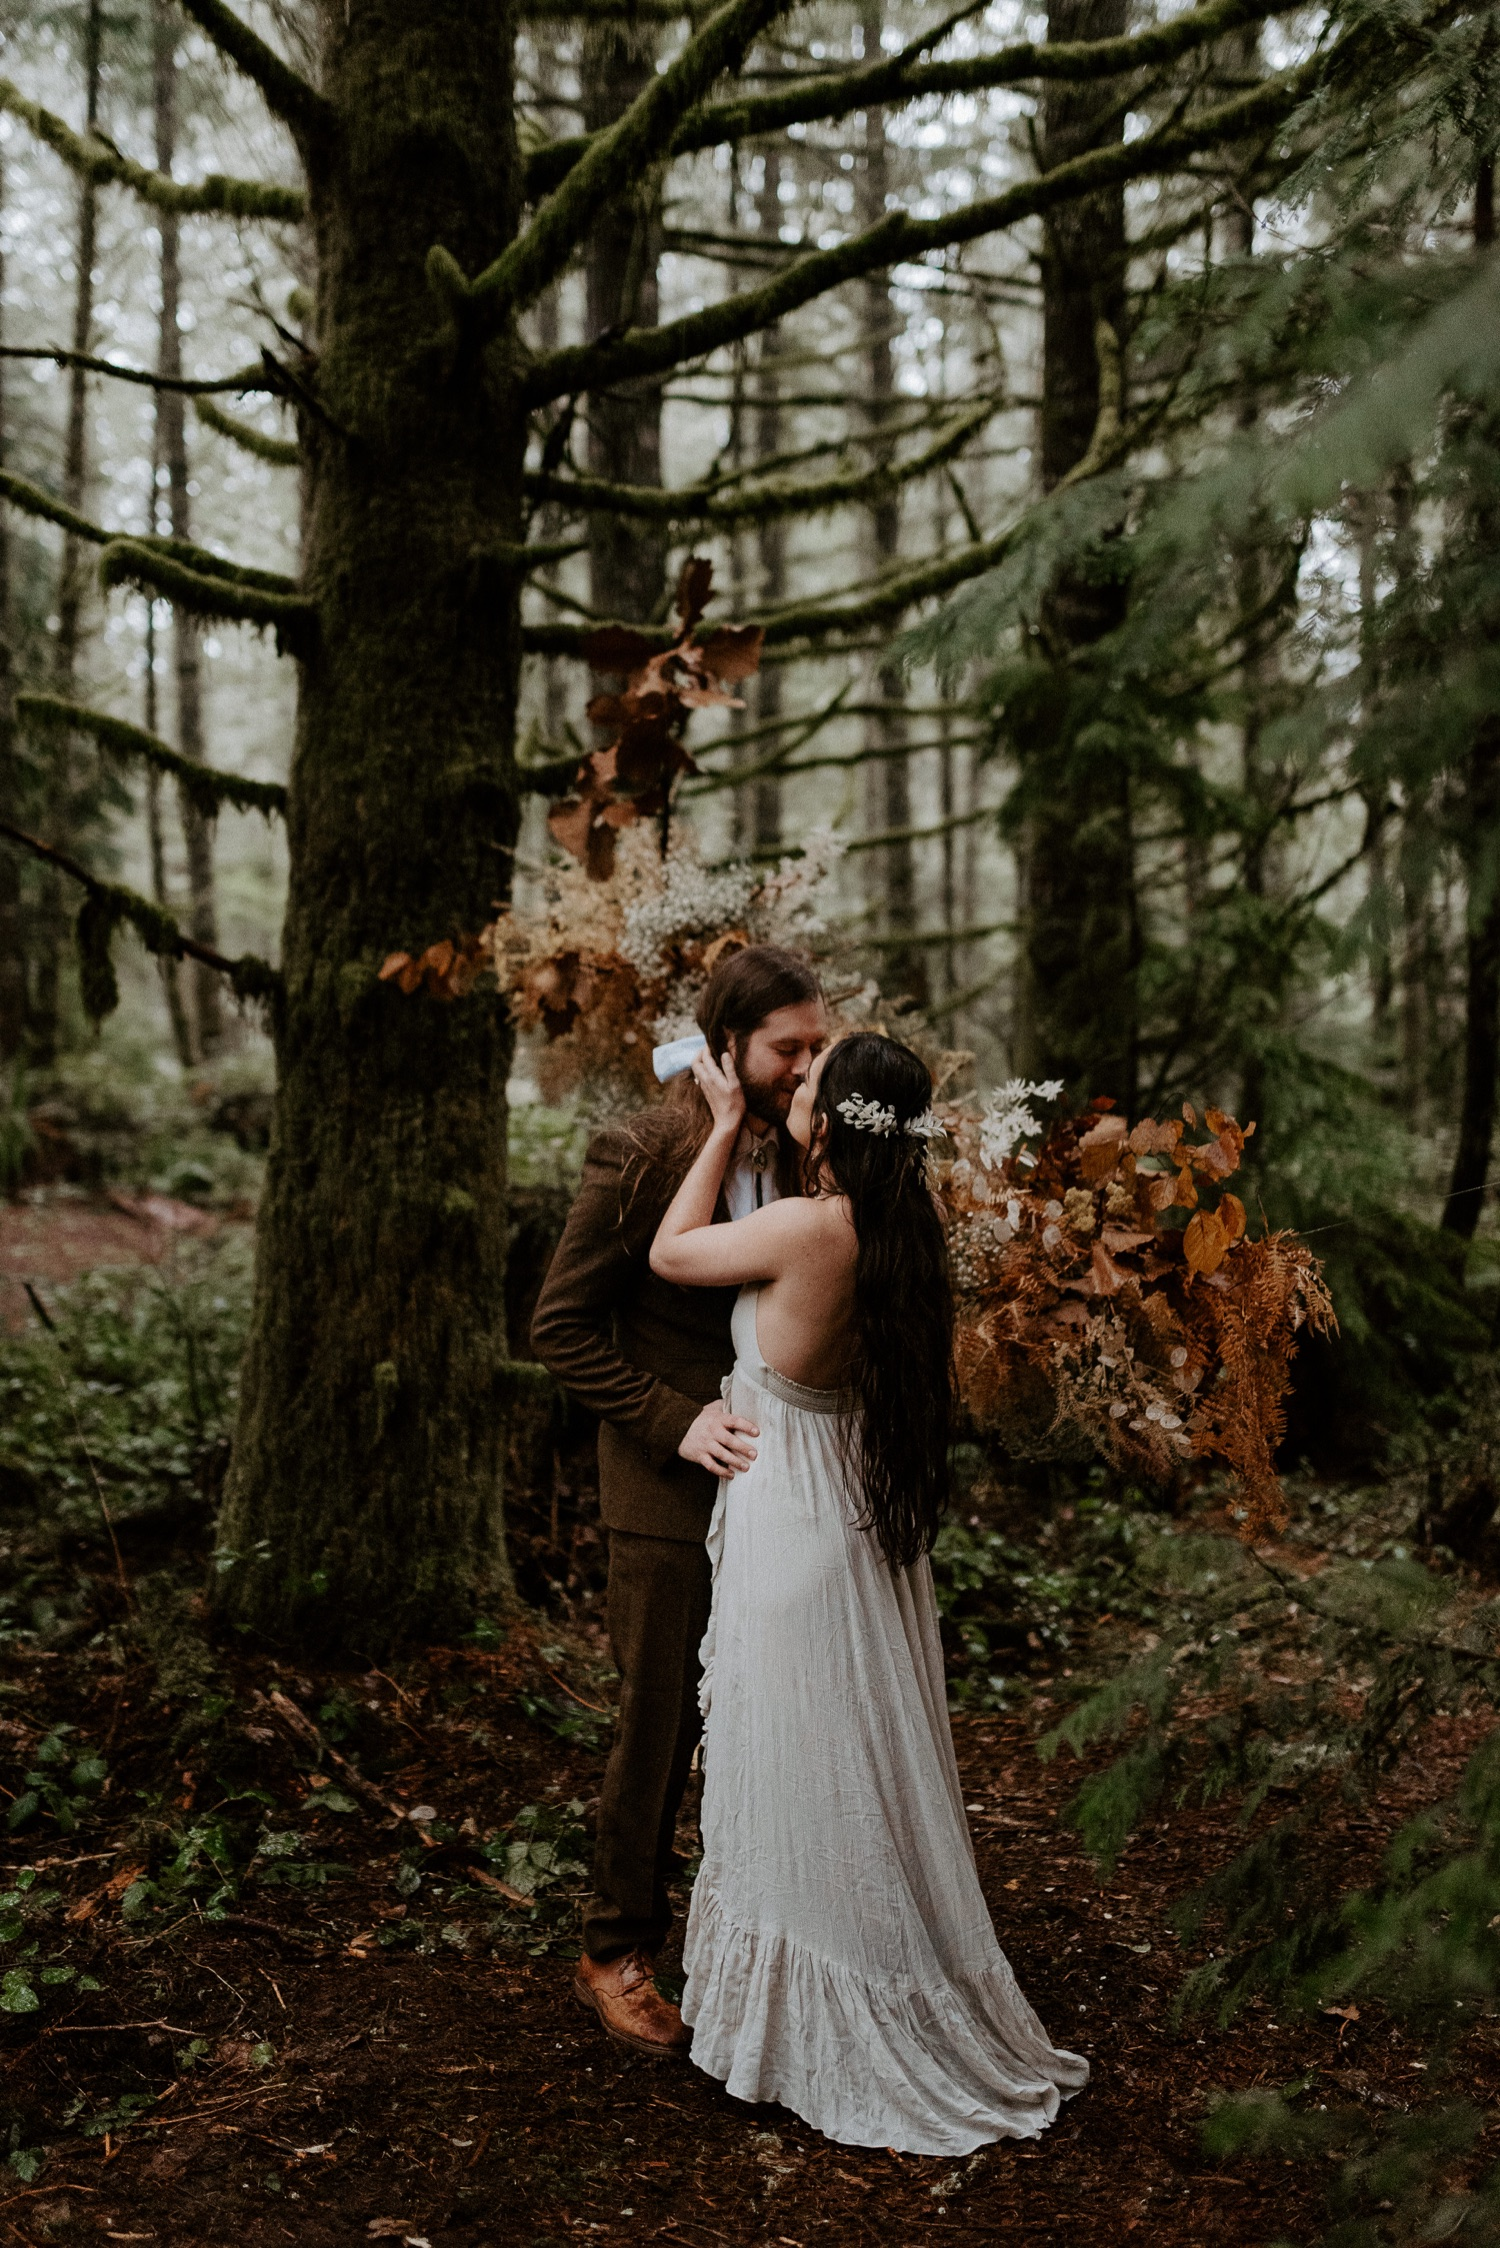 The Woodlands House Sandy Oregon Elopement Portland Elopement Photographer PNW Adventurous Elopement Anais Possamai Photography 018